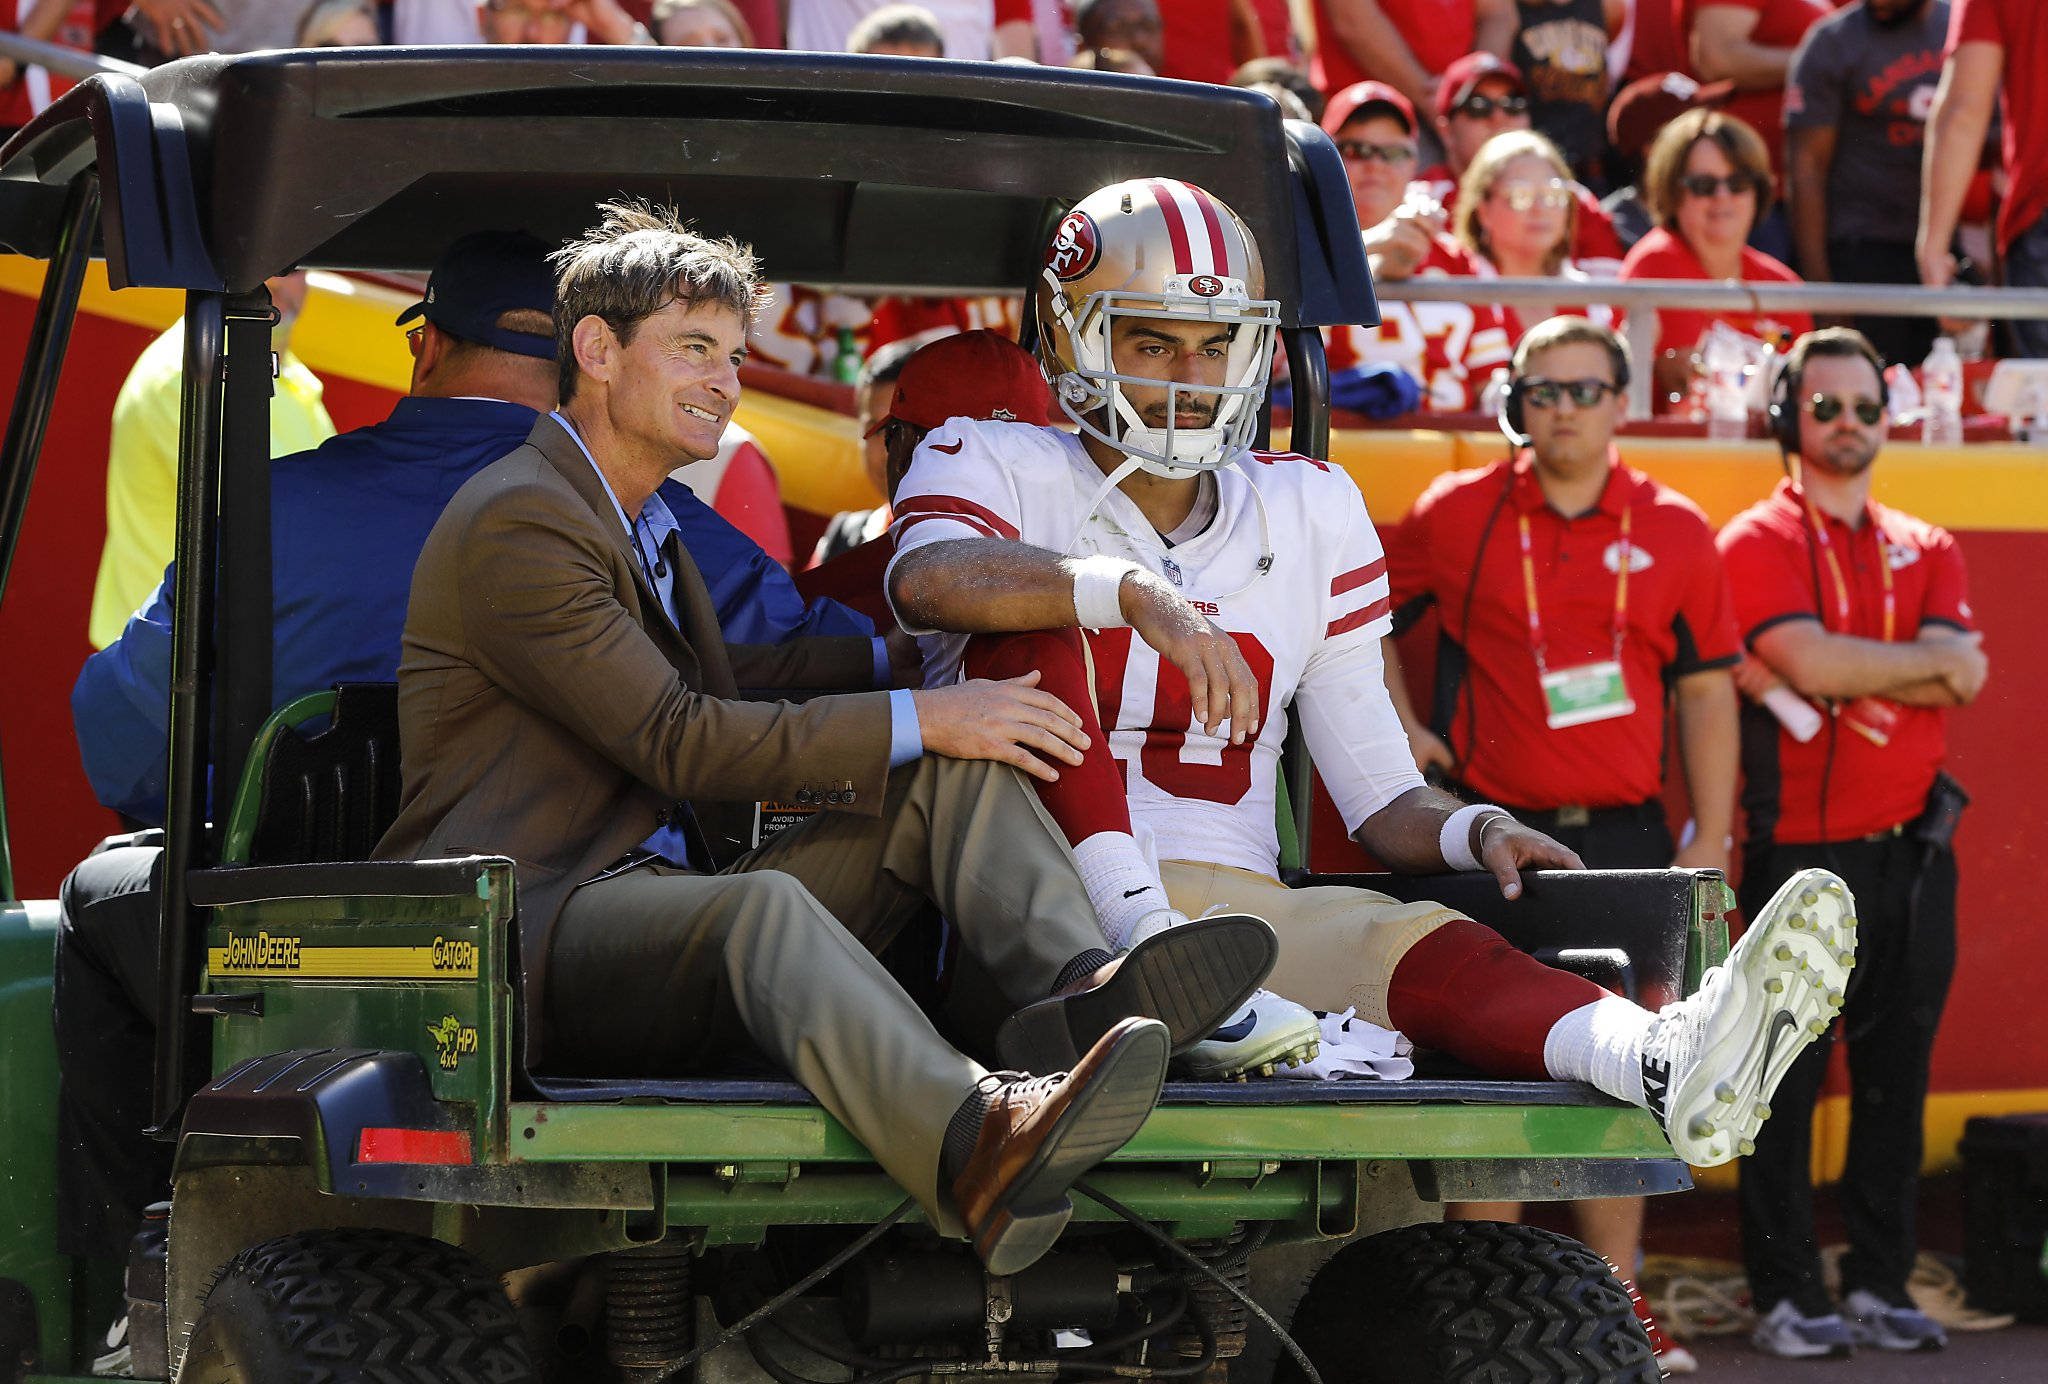 838d8a35 49ers' Jimmy Garoppolo has torn ACL, season is over - SFChronicle.com